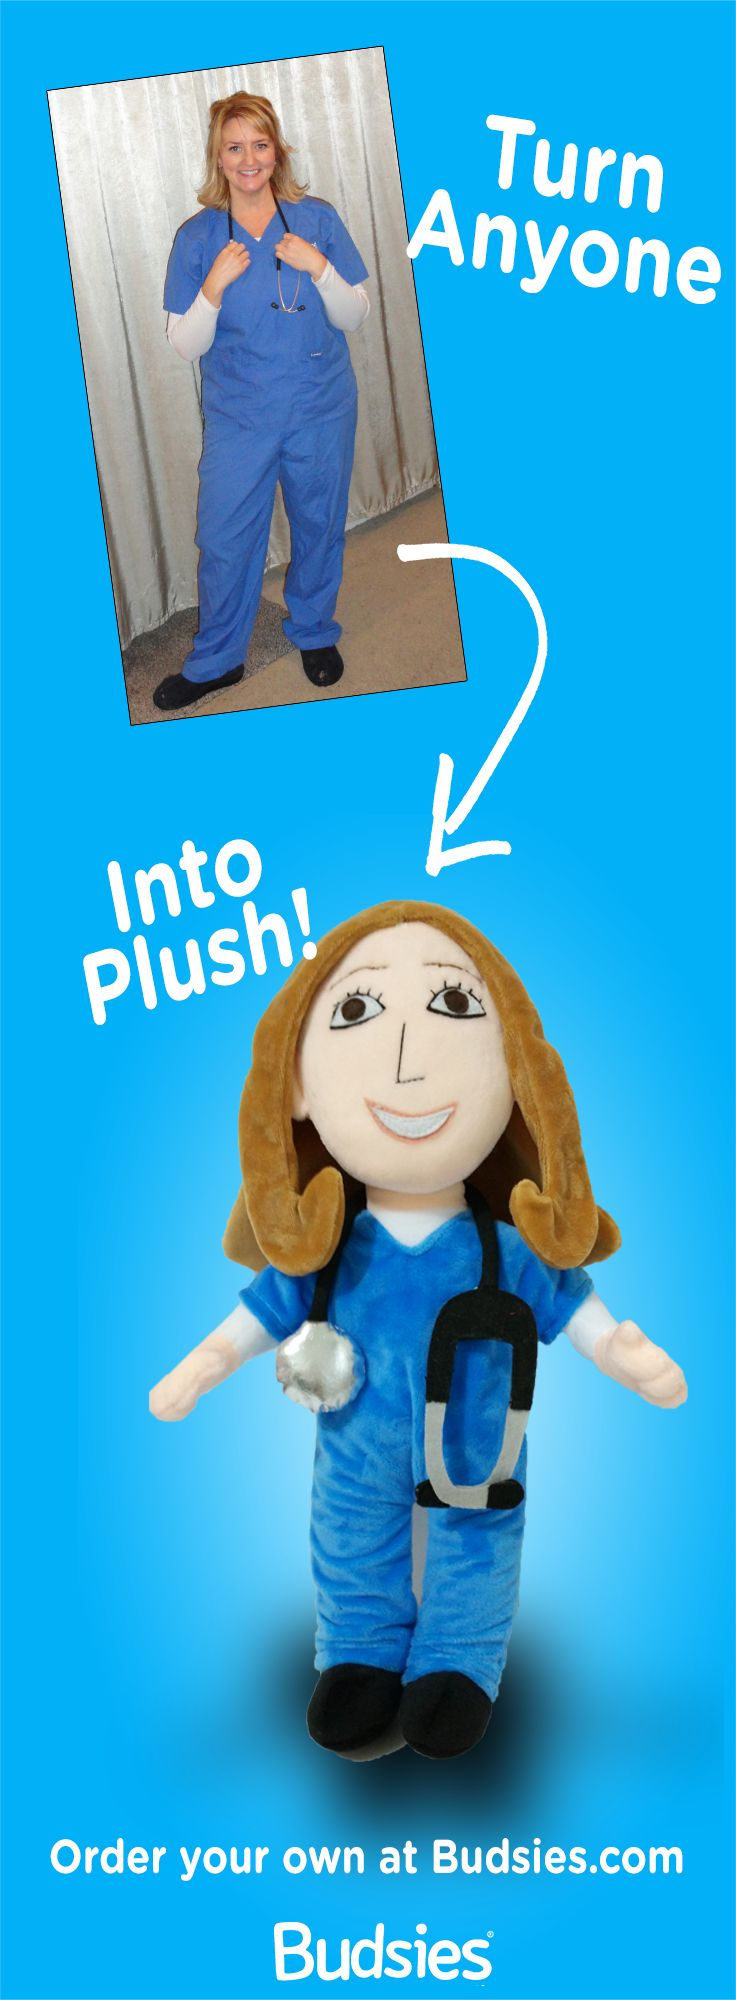 Custom Gift Idea!  Turn anyone into a custom plush doll.  Super simple to order at Budsies.com/selfies